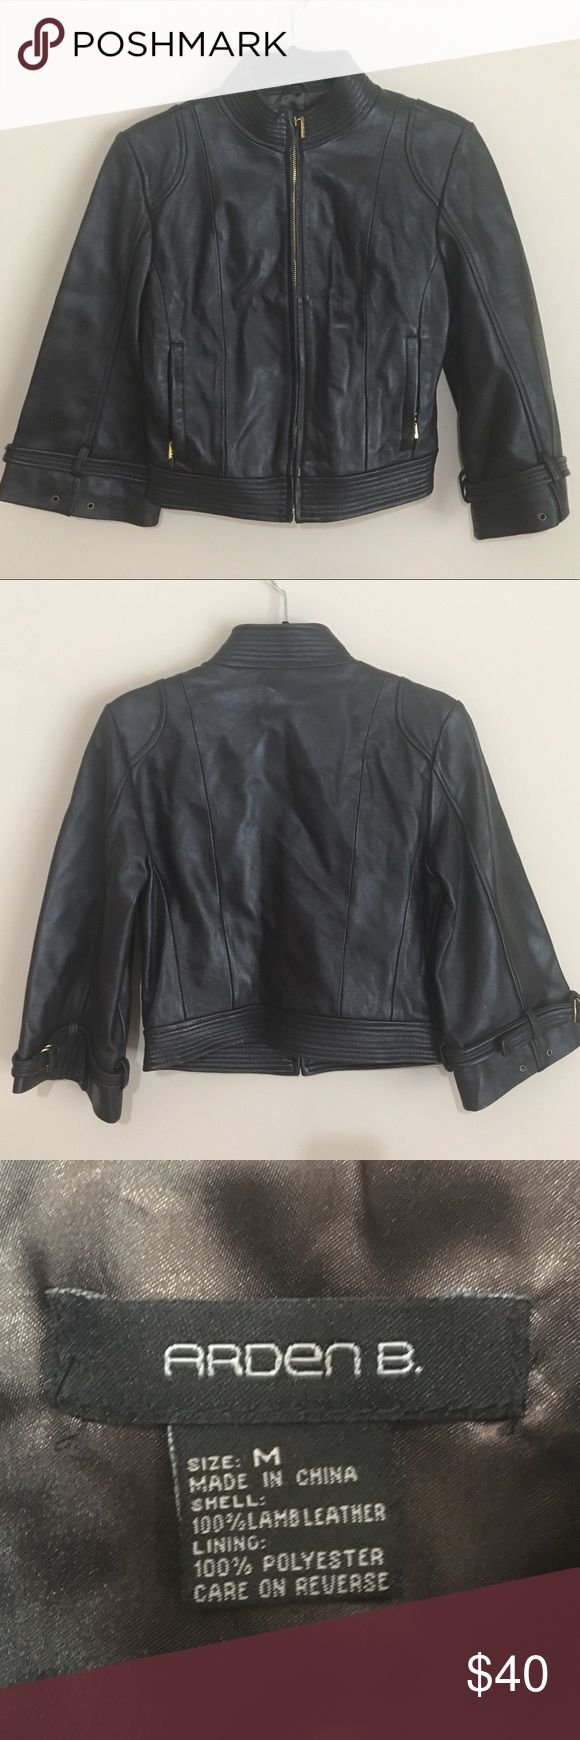 Arden B. Brown Lambskin Leather Jacket This listing is for a gorgeous Arden B. brown lambskin leather jacket with 3/4 length sleeves and gold details. The measurement of the breastline is 18in. Arden B Jackets & Coats